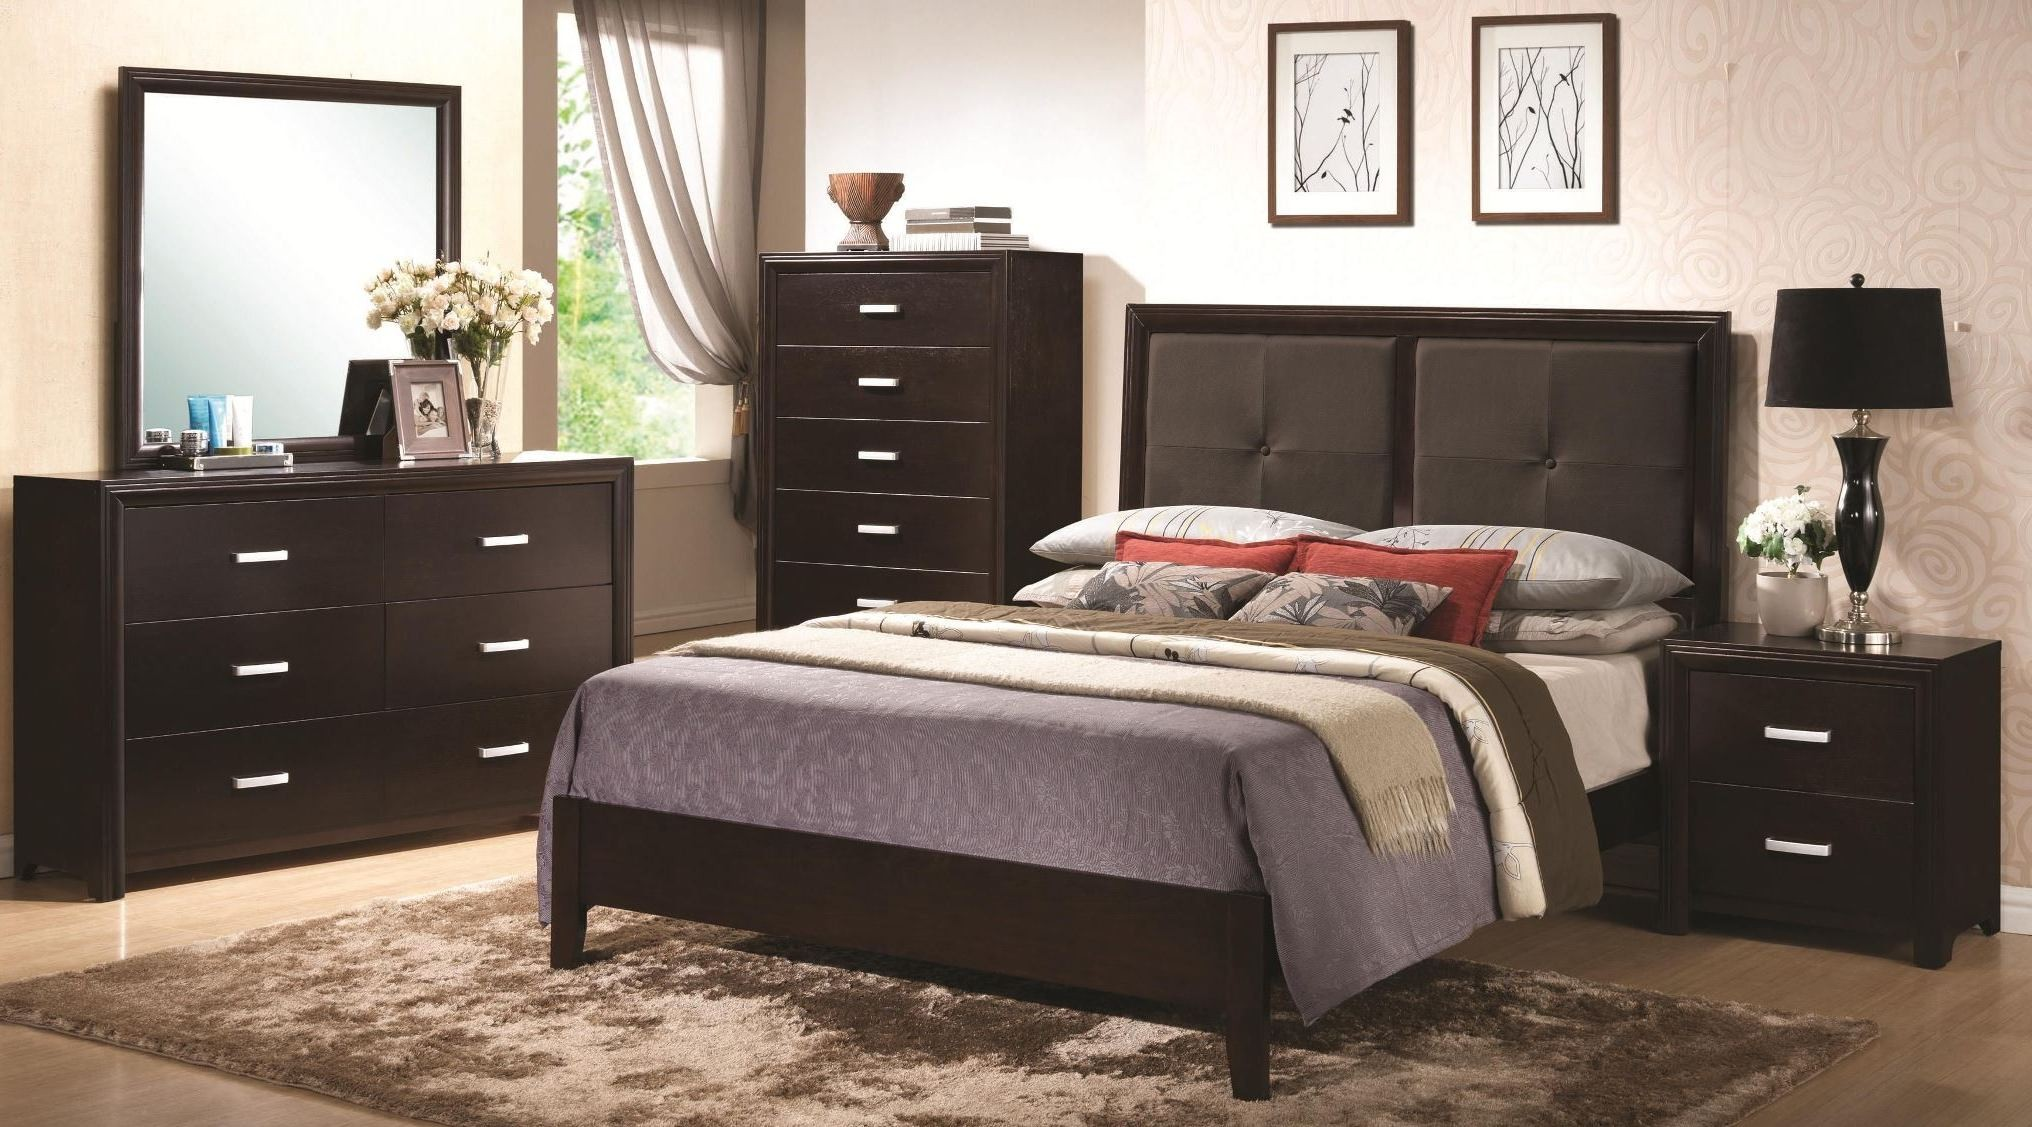 Andreas cappuccino padded platform bedroom set from Andreas furniture